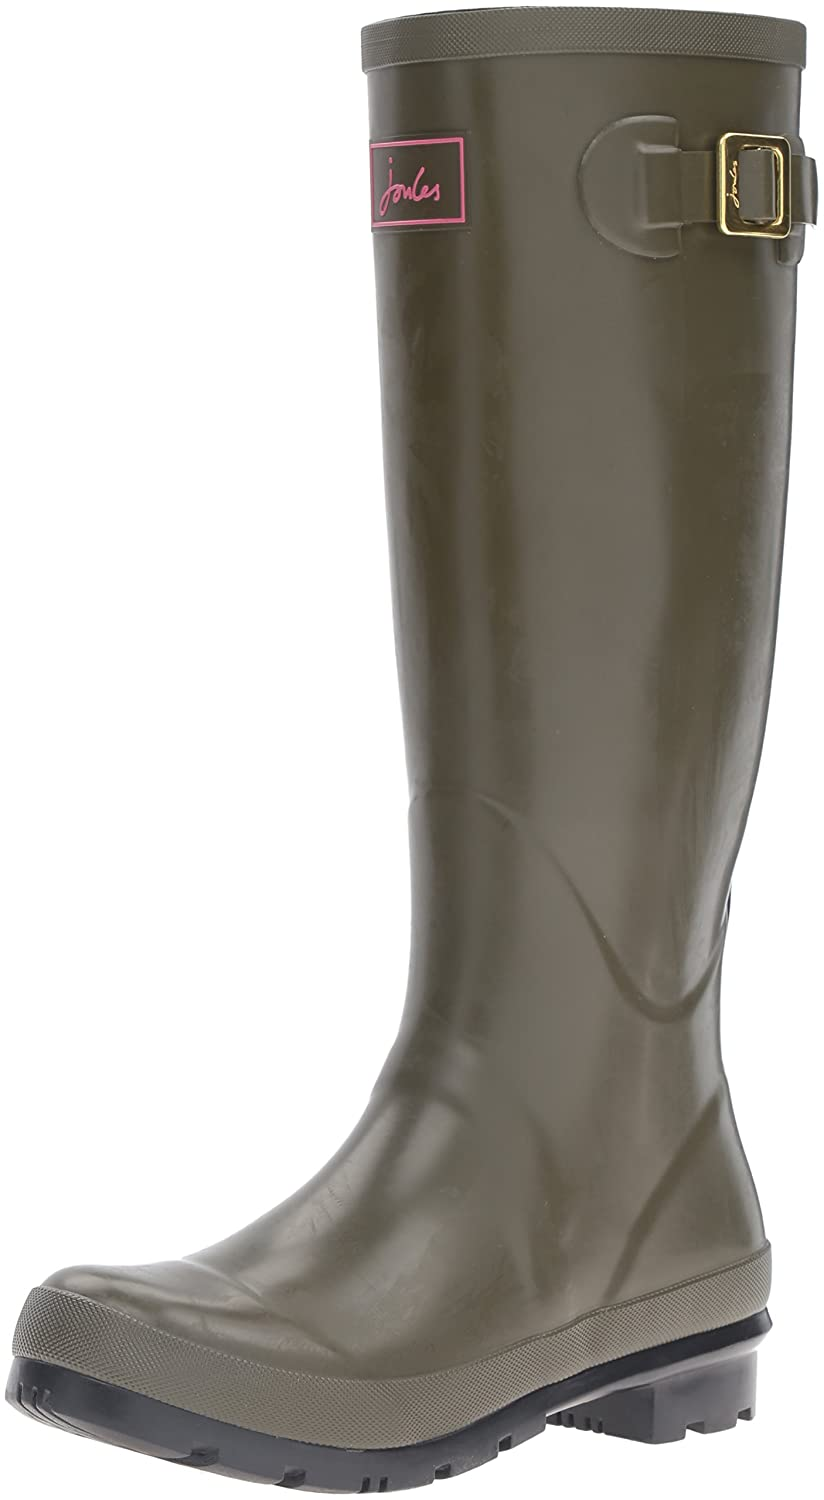 Joules Women's Field Welly Gloss Rain Boot B01F00E00K 5 B(M) US|Woodland Green